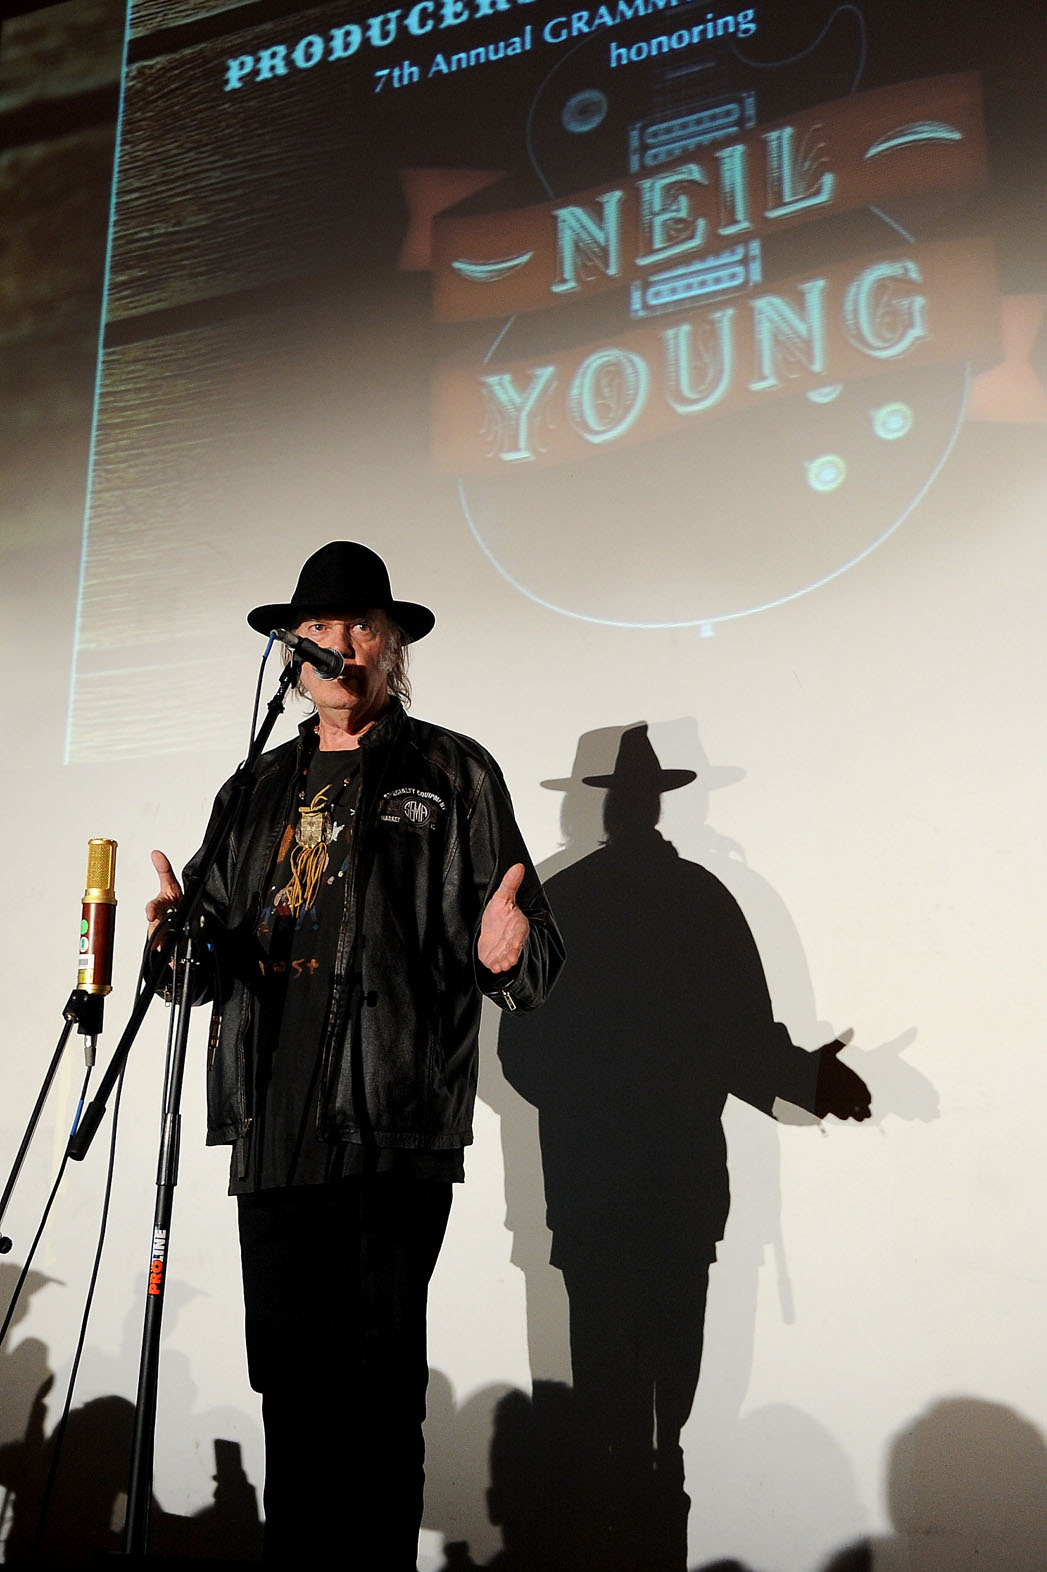 Neil Young Grammy Tribute Event - P 2014